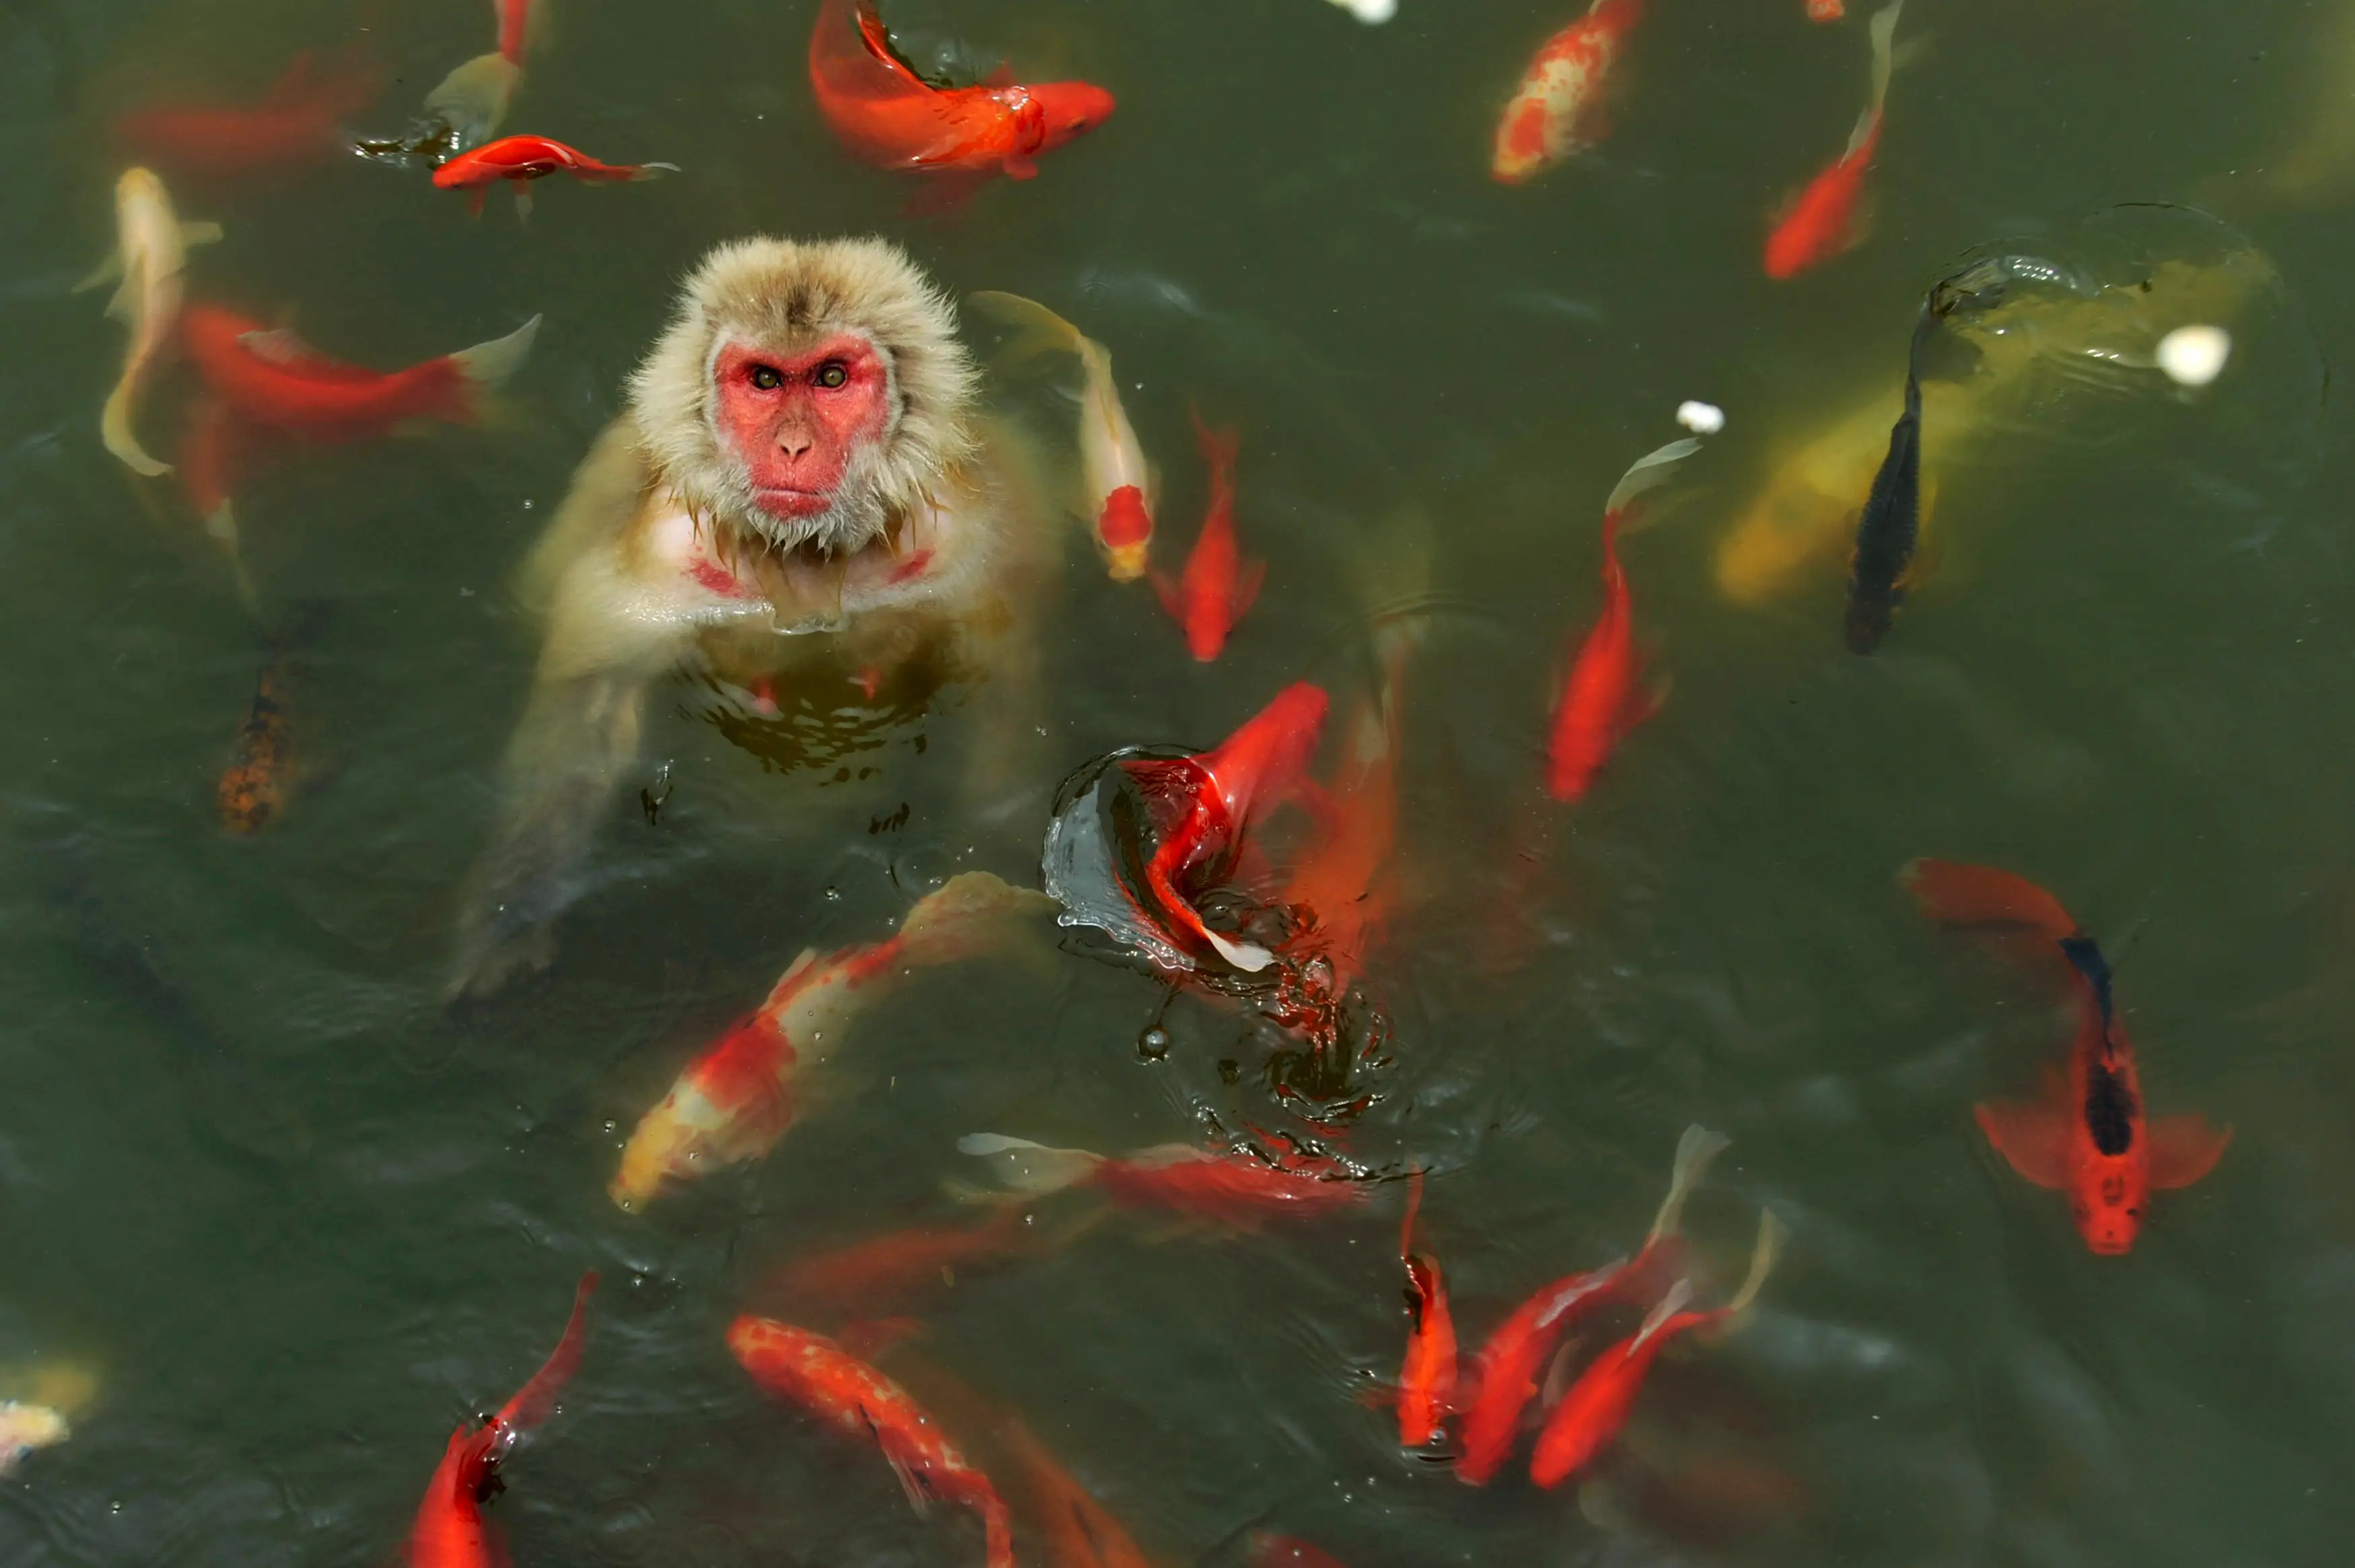 A monkey surrounded by carp plays in a pond at a wildlife park in China.